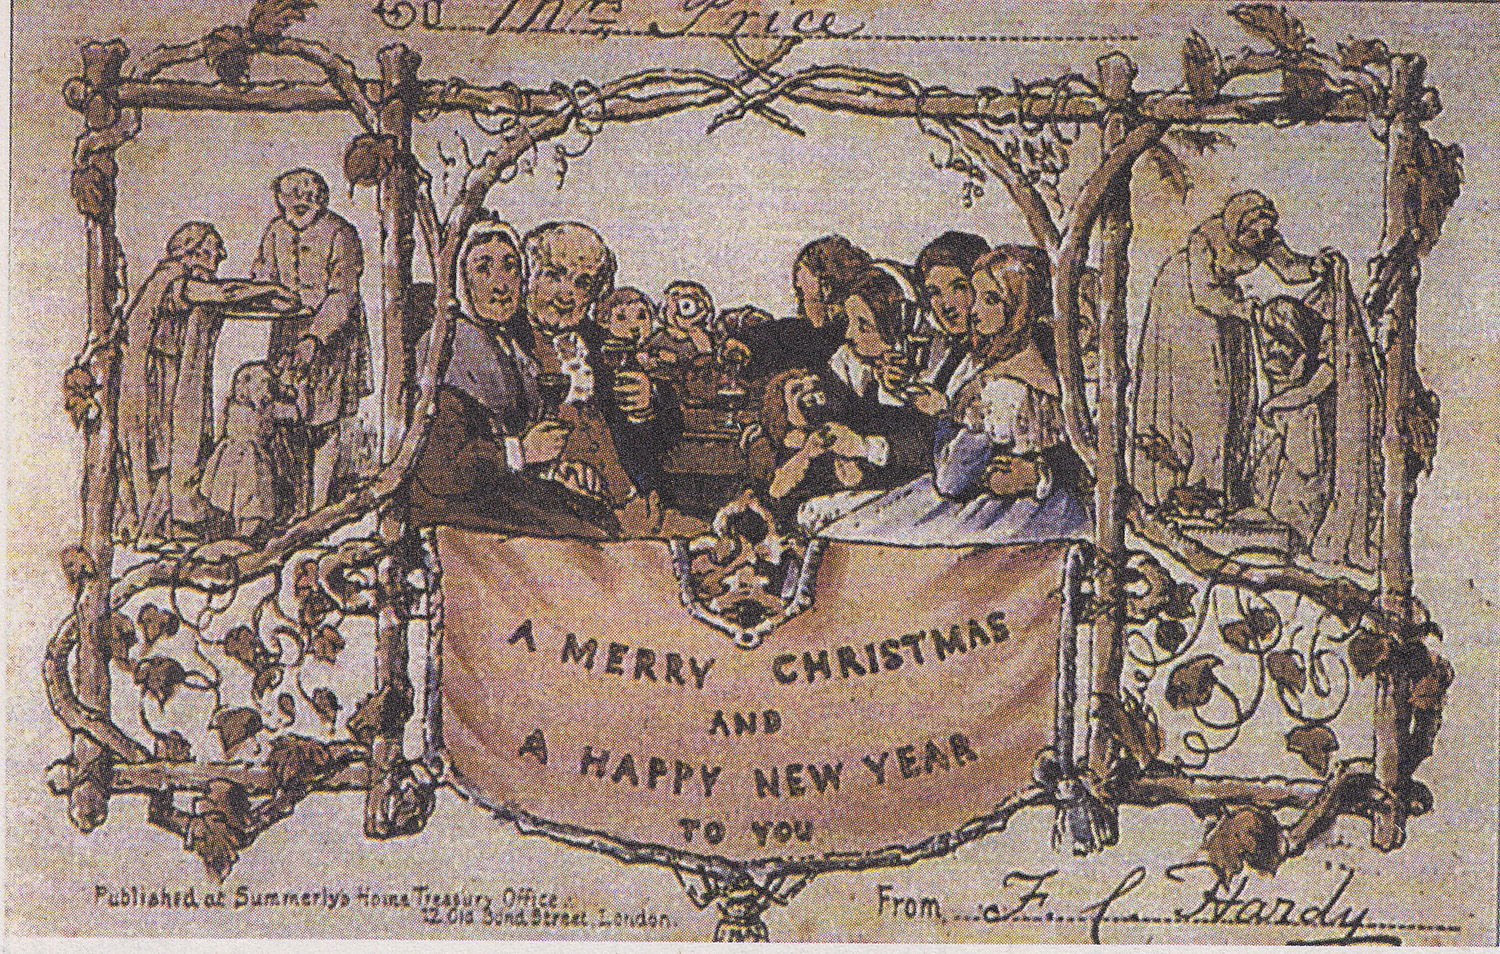 Image of the first Christmas card | JC Horsley via Wikipedia Commons